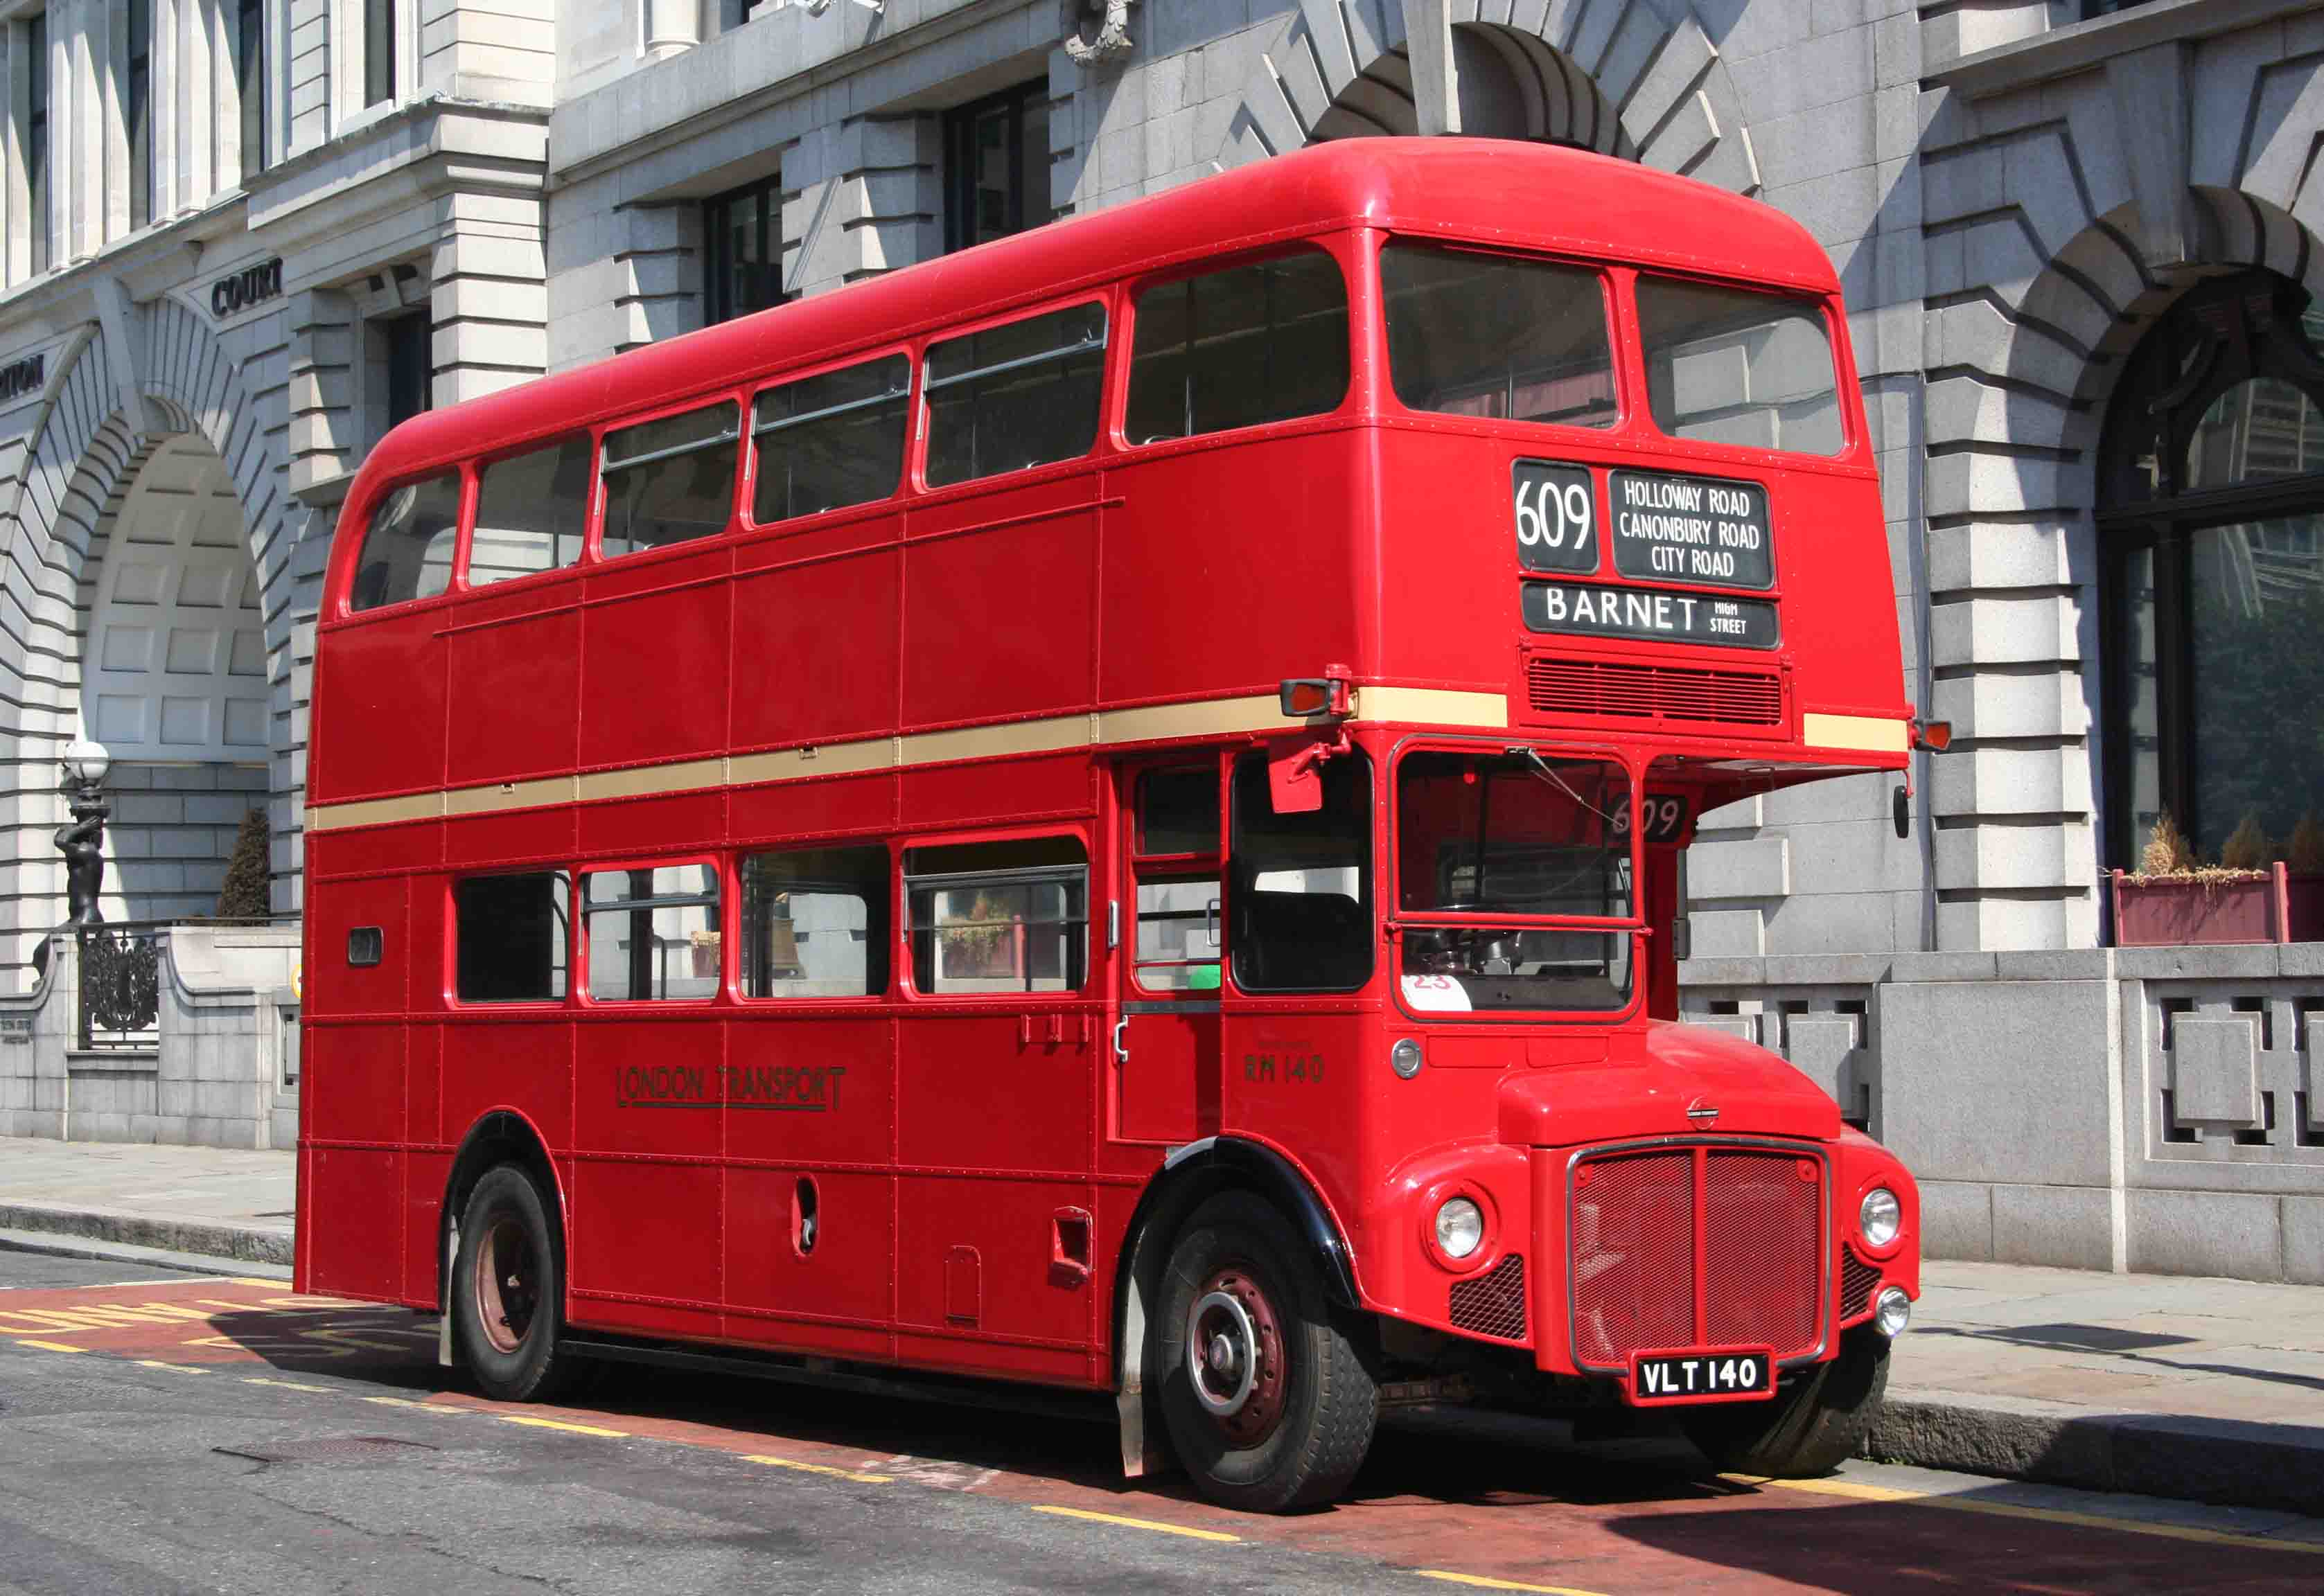 1959 aec routemaster bus rm140 london bus museum. Black Bedroom Furniture Sets. Home Design Ideas